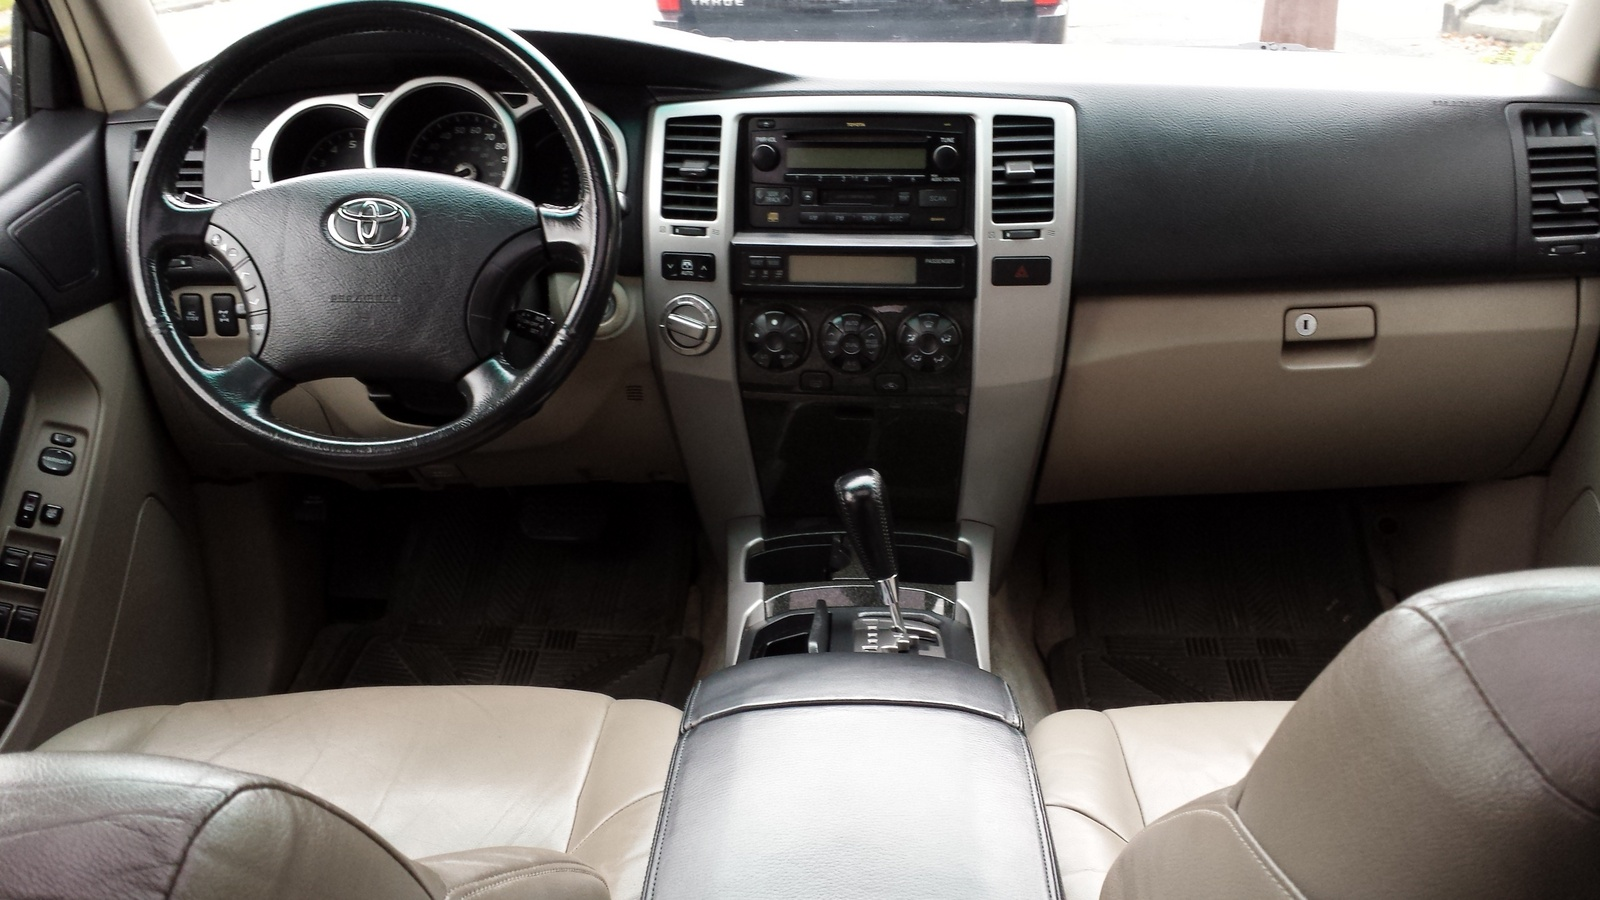 Toyota Tazz Interior Modified Conquest Pimped Pictures Download